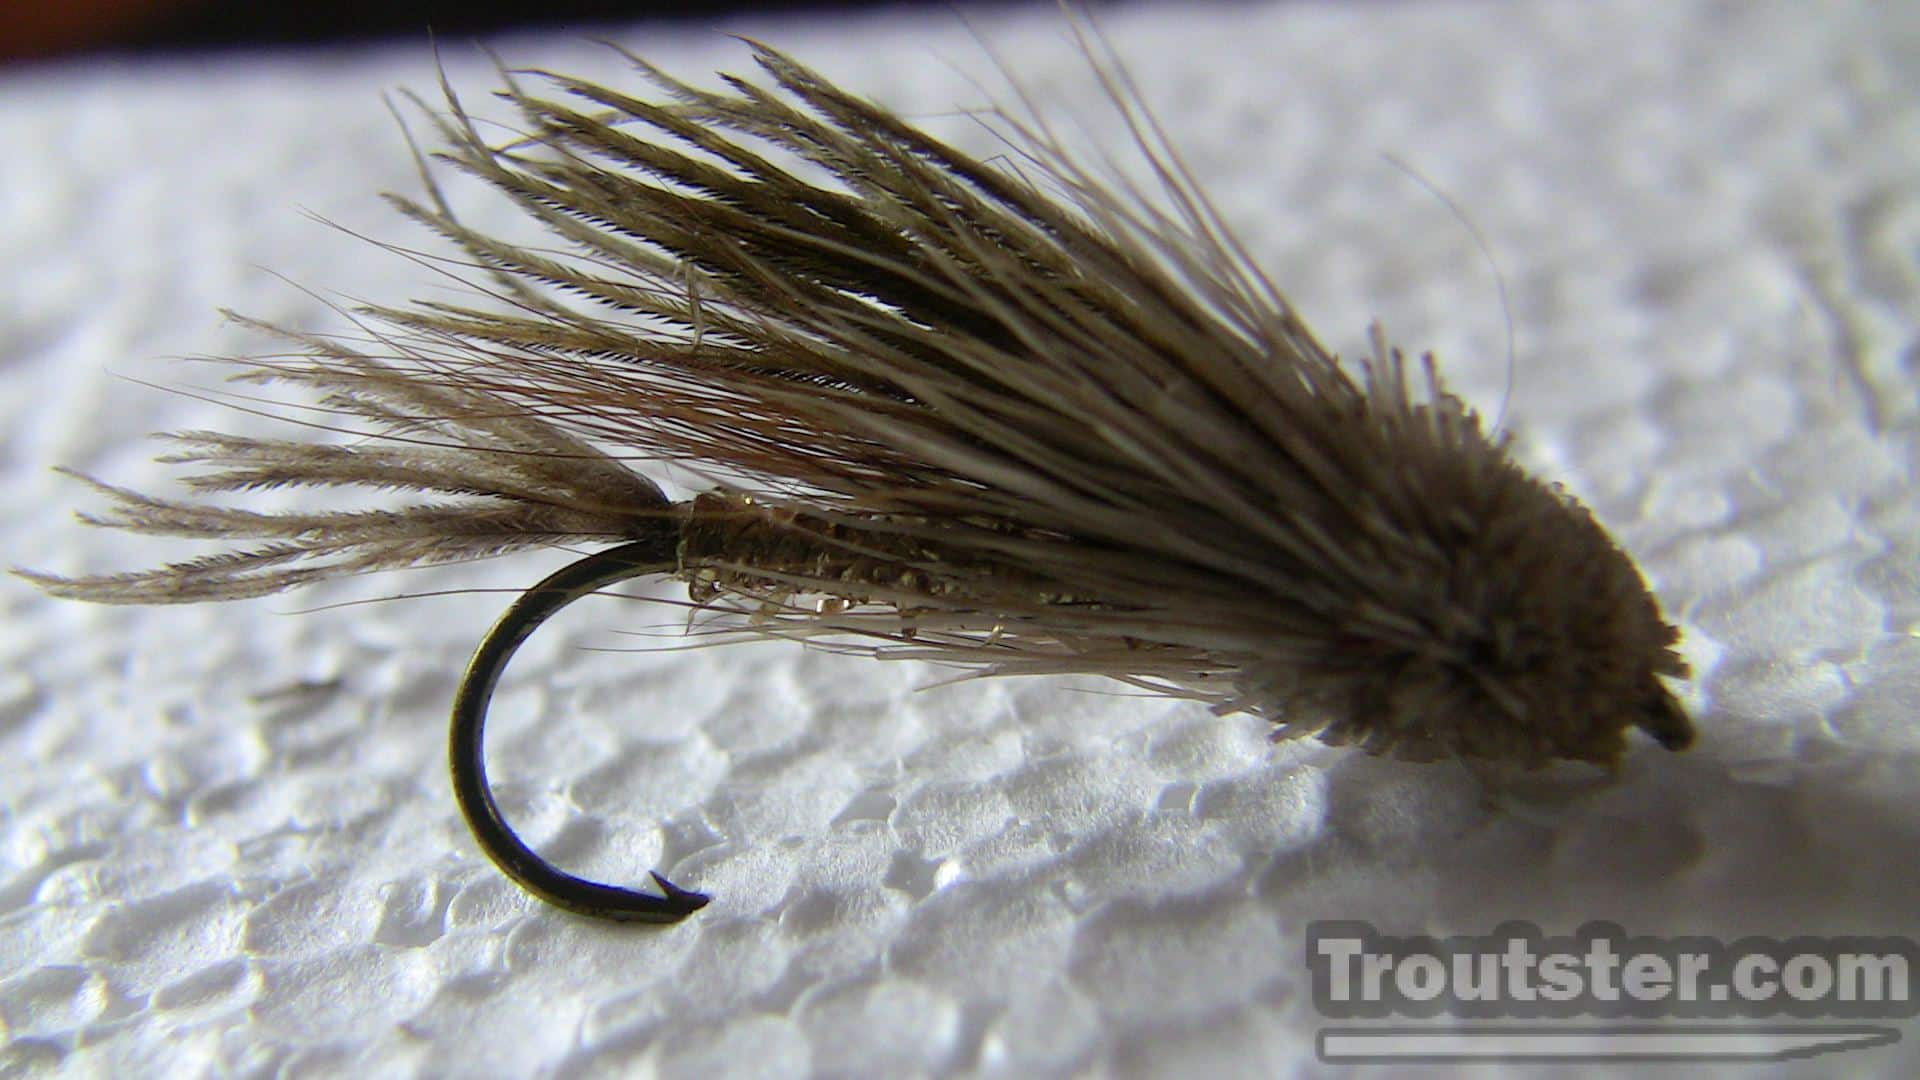 A muddler minnow fly, how to tie a muddler minnow, muddler minnow fly pattern, fishing a muddler minnow